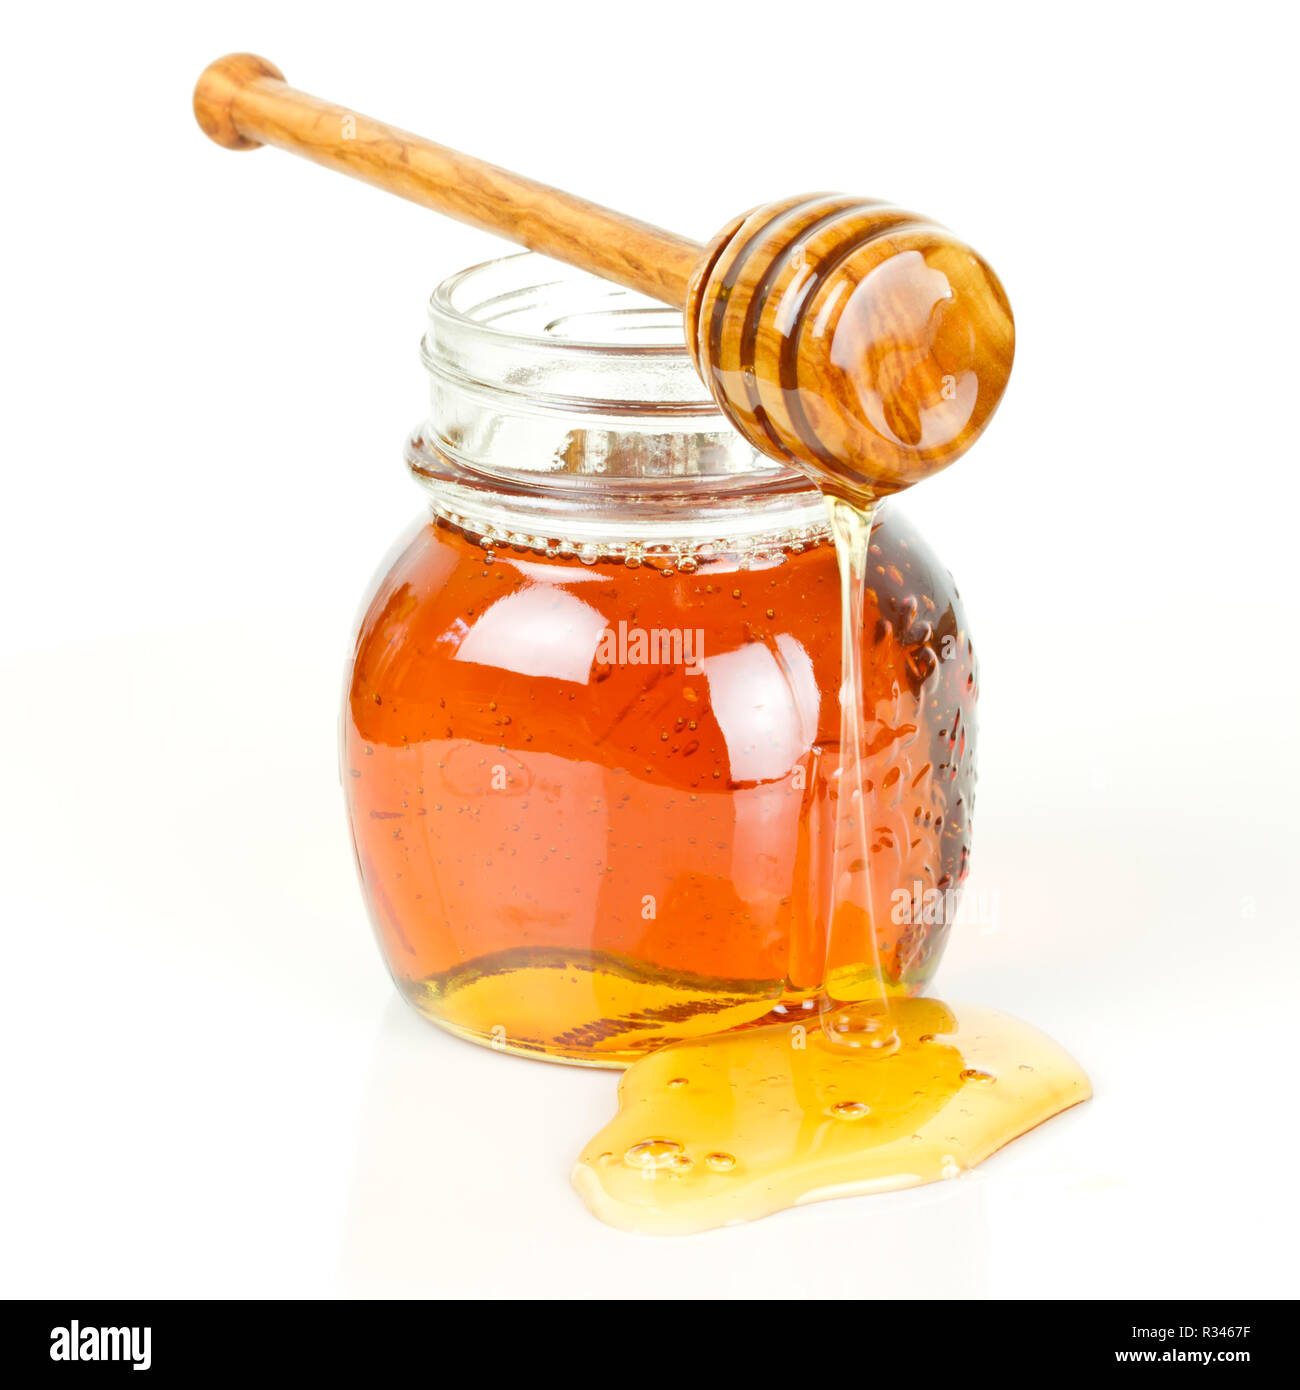 jar of honey - Stock Image